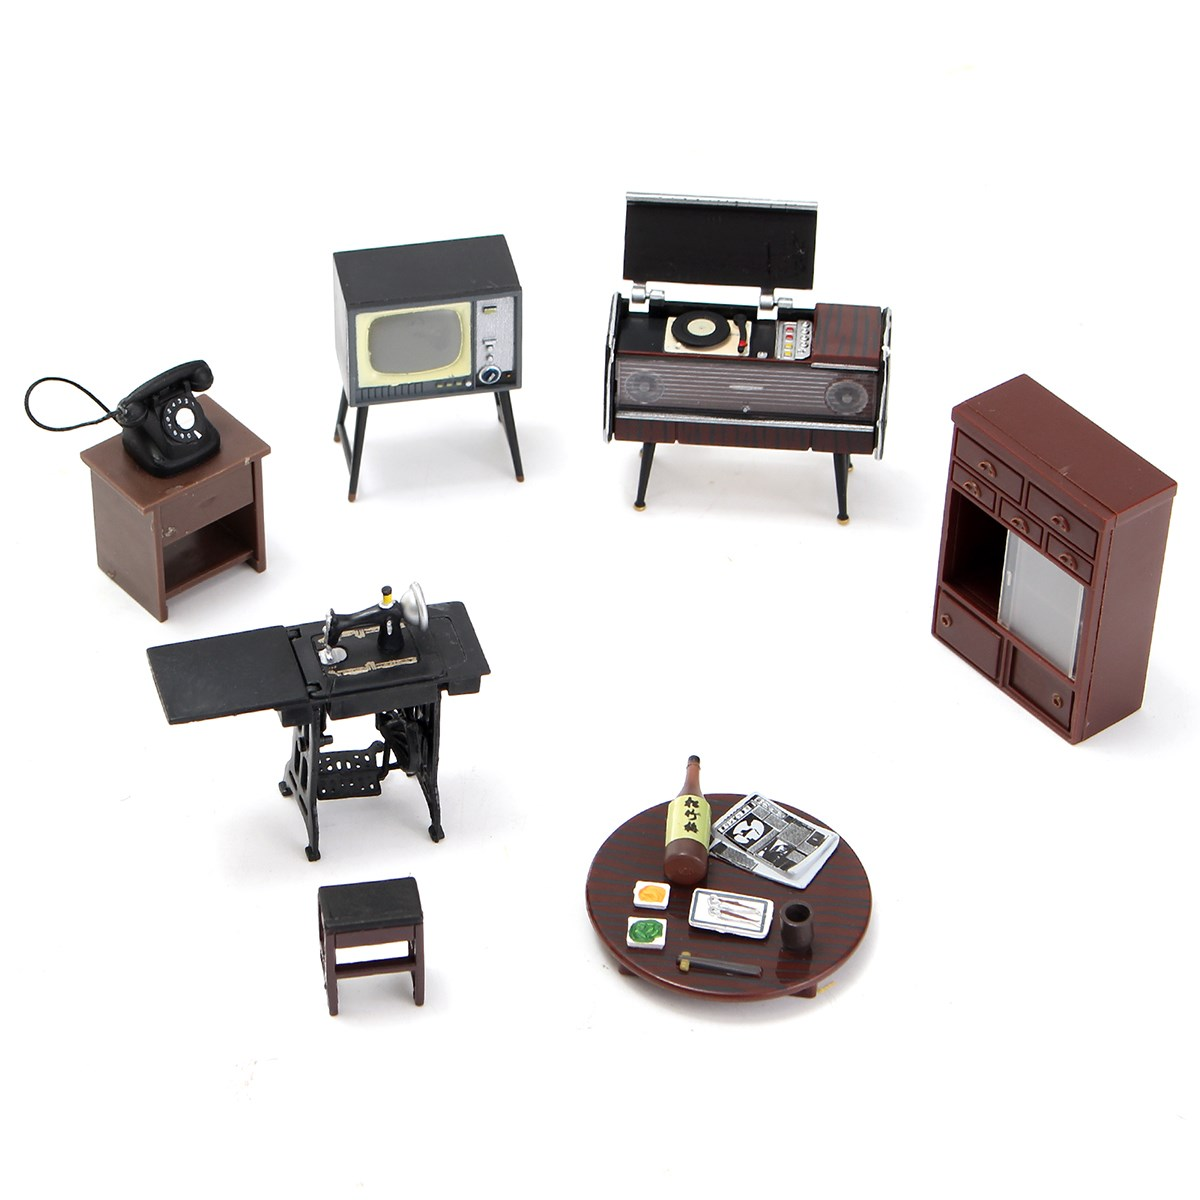 mini furniture sets. 7pcs/set Wooden DIY 1:12 Simulation Miniature Dollhouse Furniture Mini Set For Children Dolls House Accessories-in Doll Houses From Toys \u0026 Hobbies Sets R